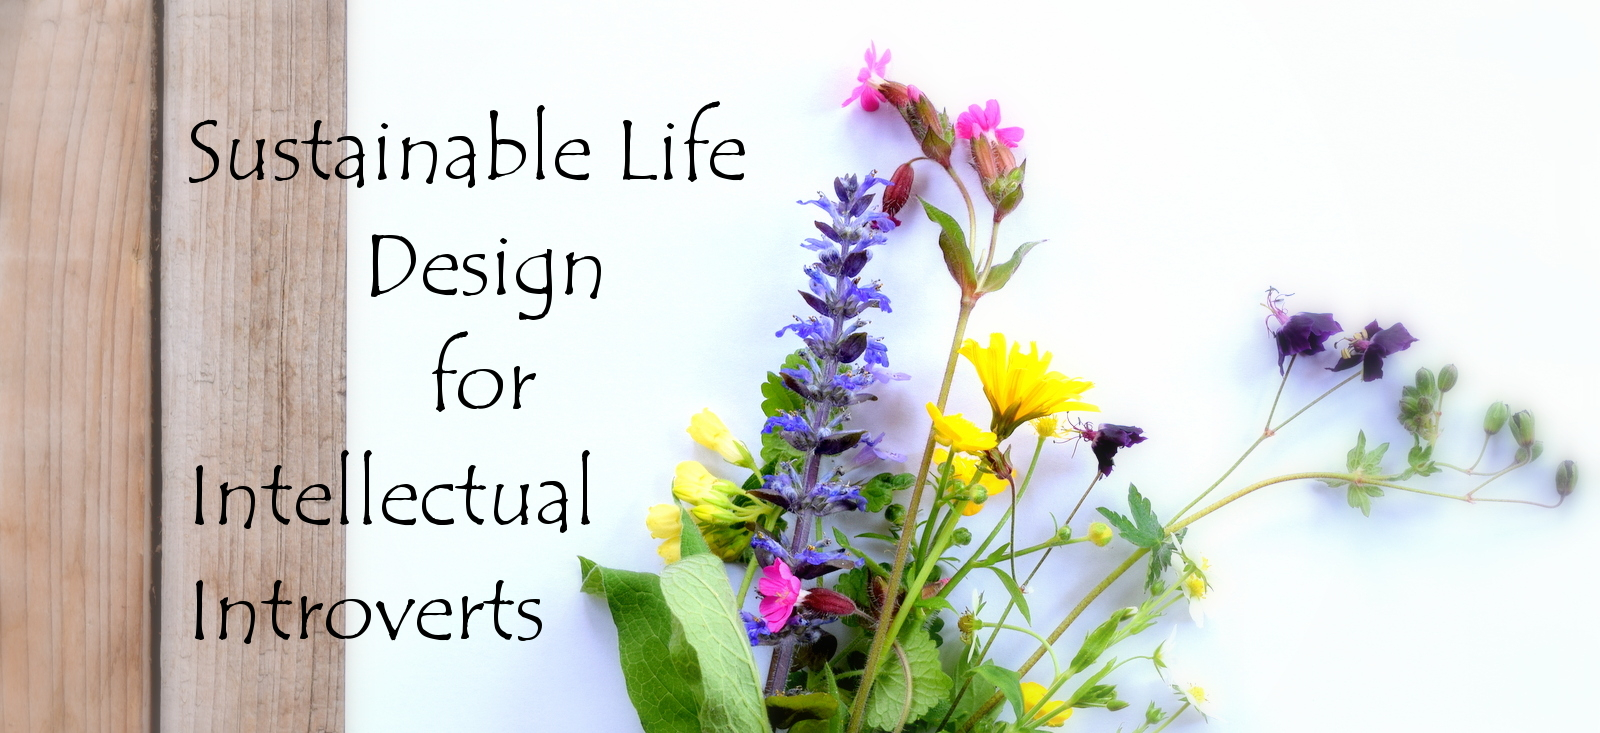 Sustainable Life Design for Intellectual Introverts